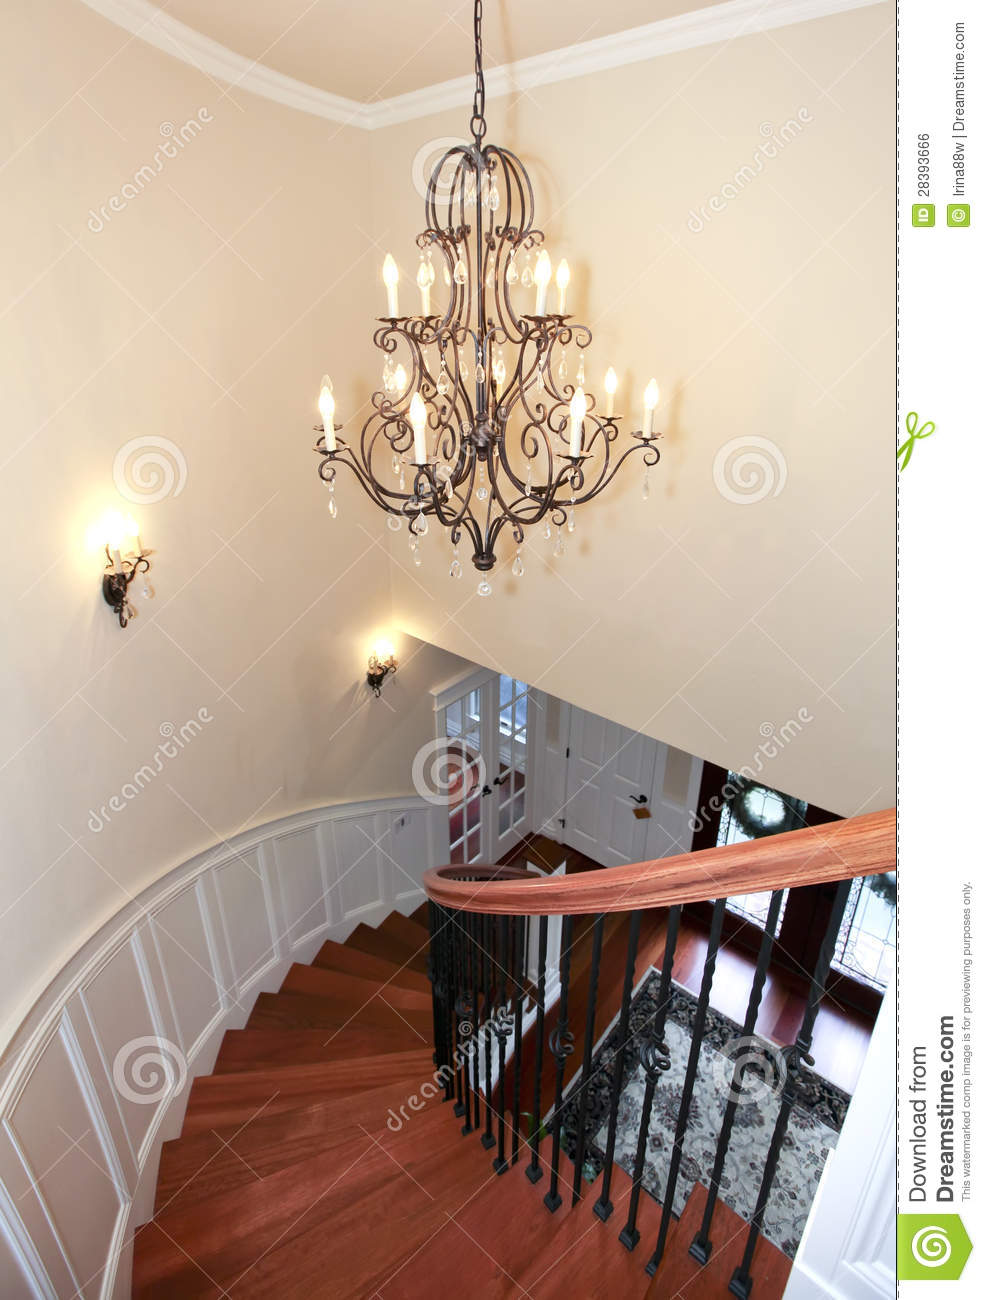 Leuchter Modern Luxury Curved Staircase With Chandelier And Harwood. Stock